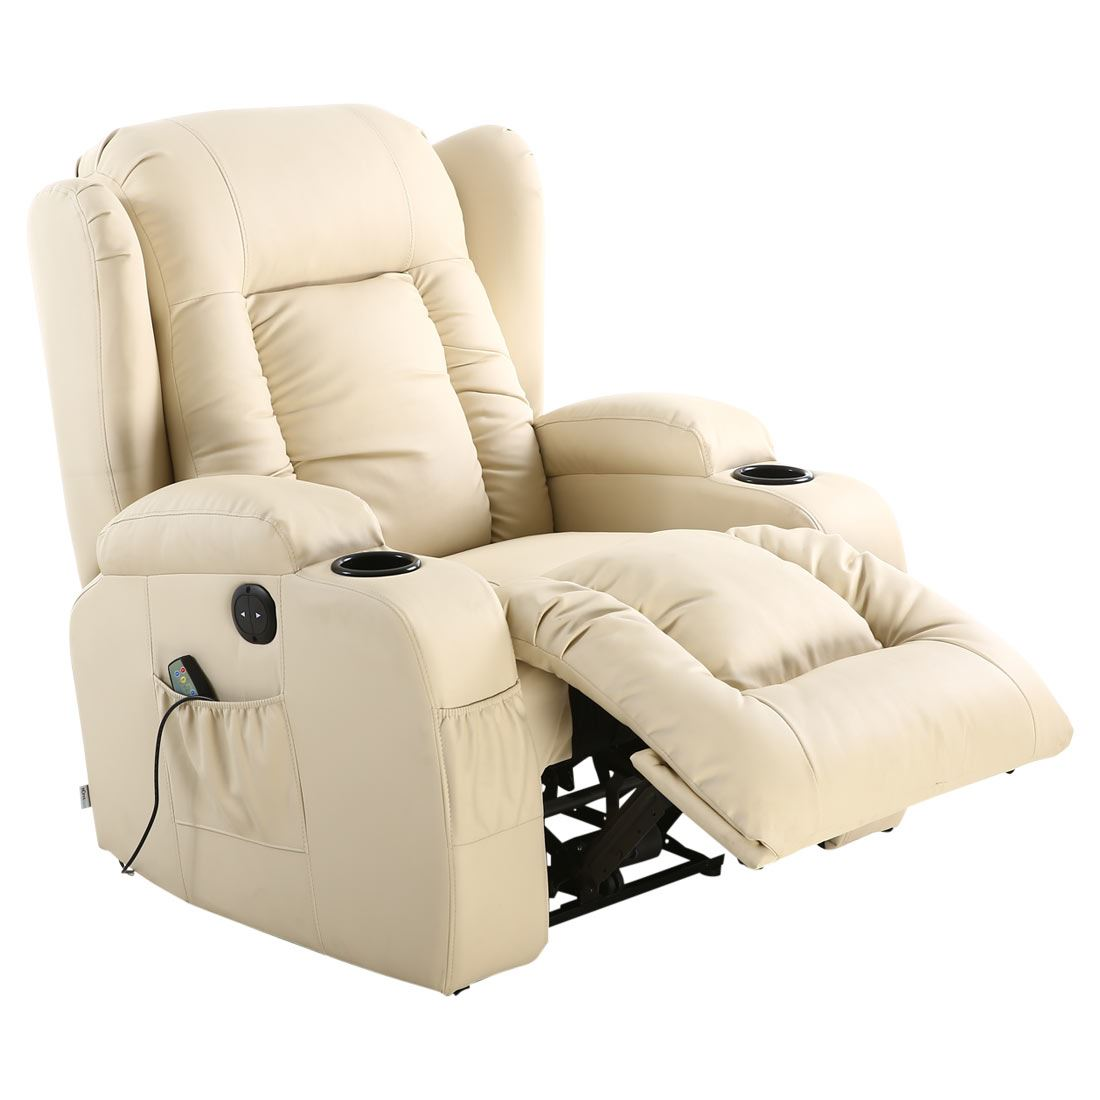 Caesar Electric Leather Auto Recliner Massage Heated